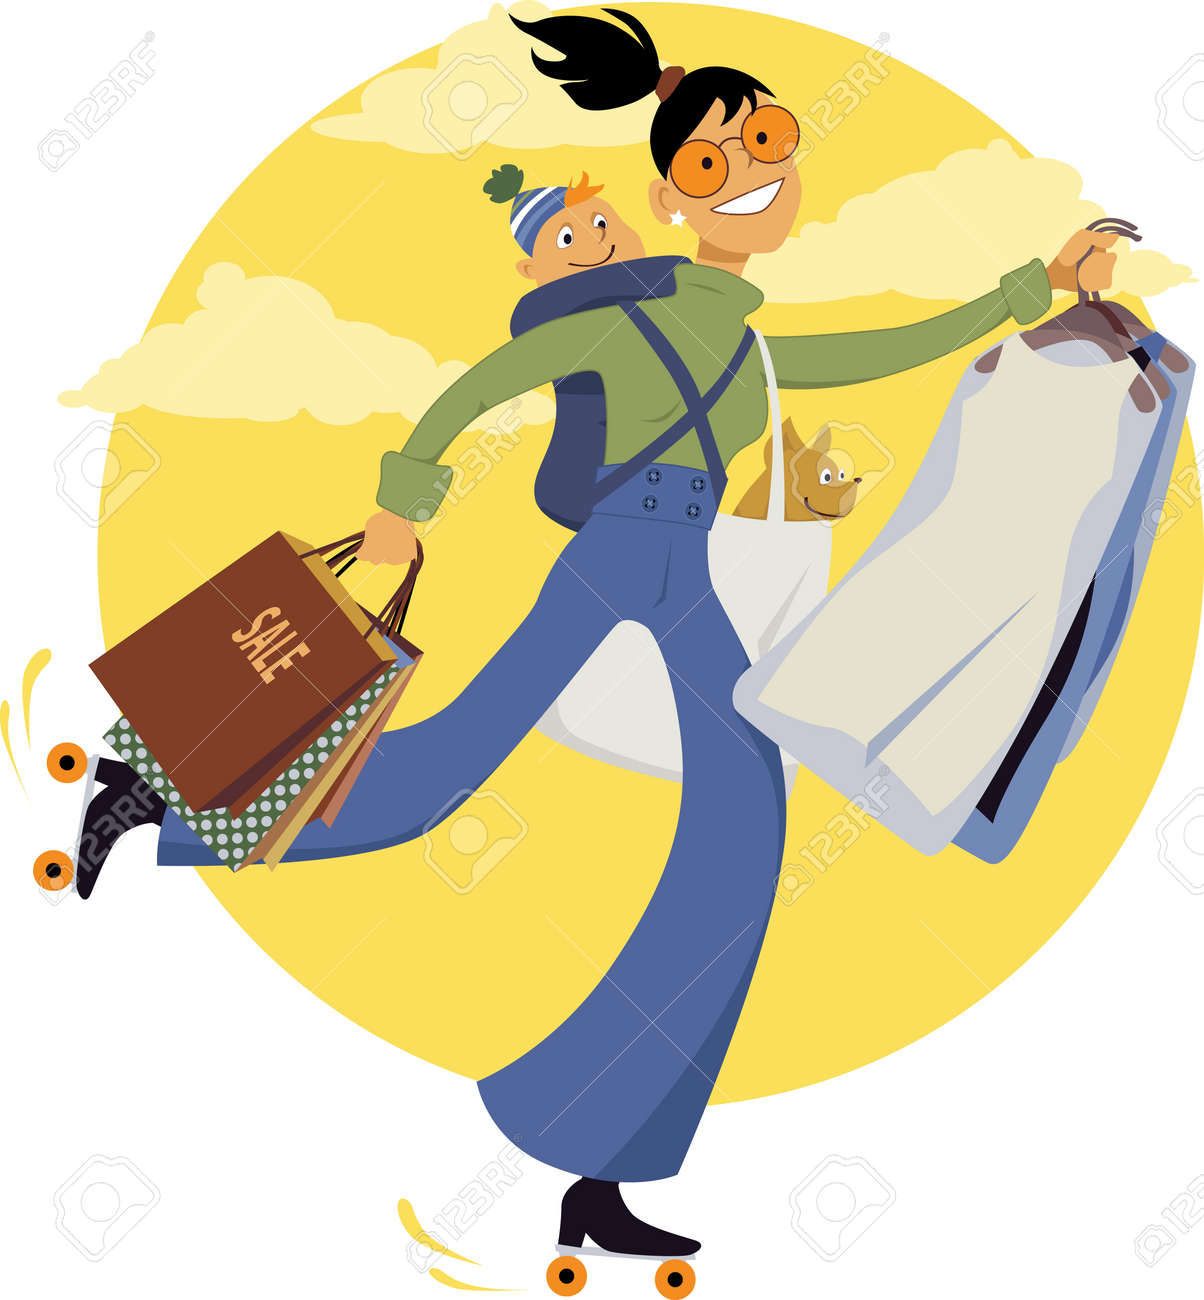 Young woman on roller skates carrying shopping bags, dry-cleaning, a dog and a baby, vector illustration - 44339967